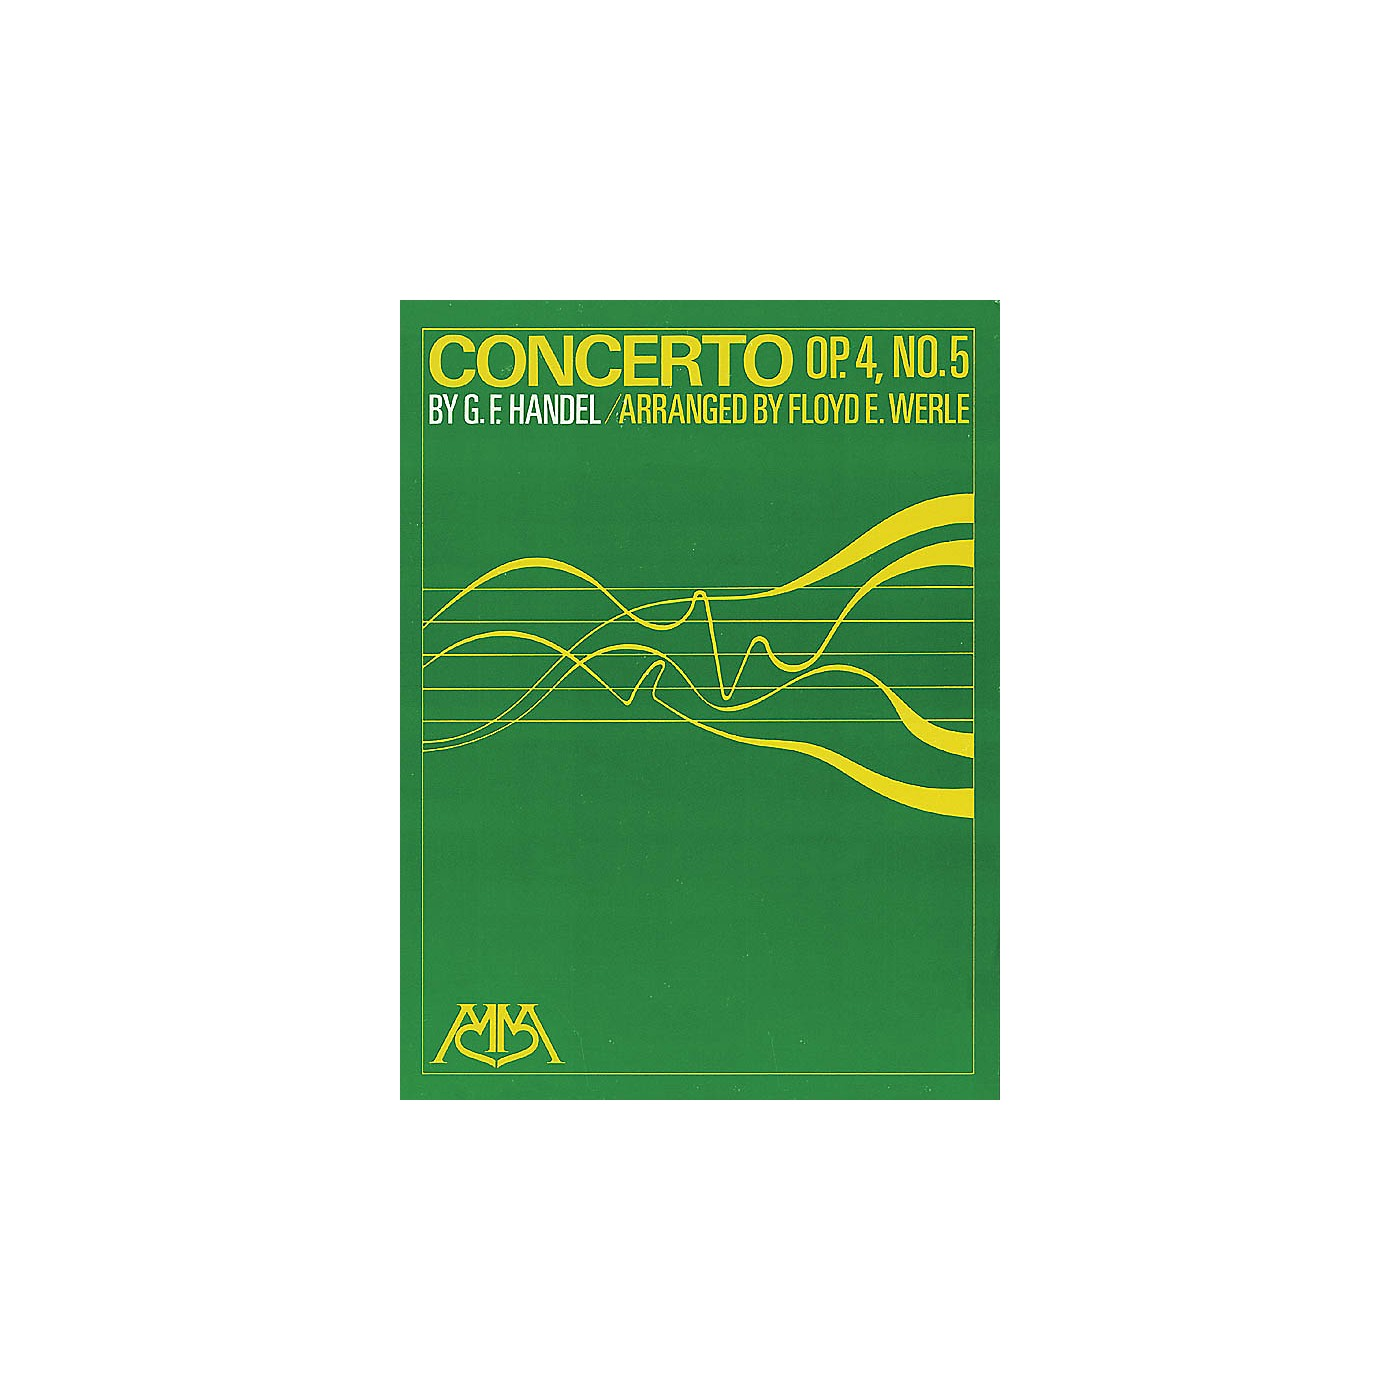 Hal Leonard Concerto Op. 4, No. 5 Concert Band Arranged by Floyd E. Werle thumbnail